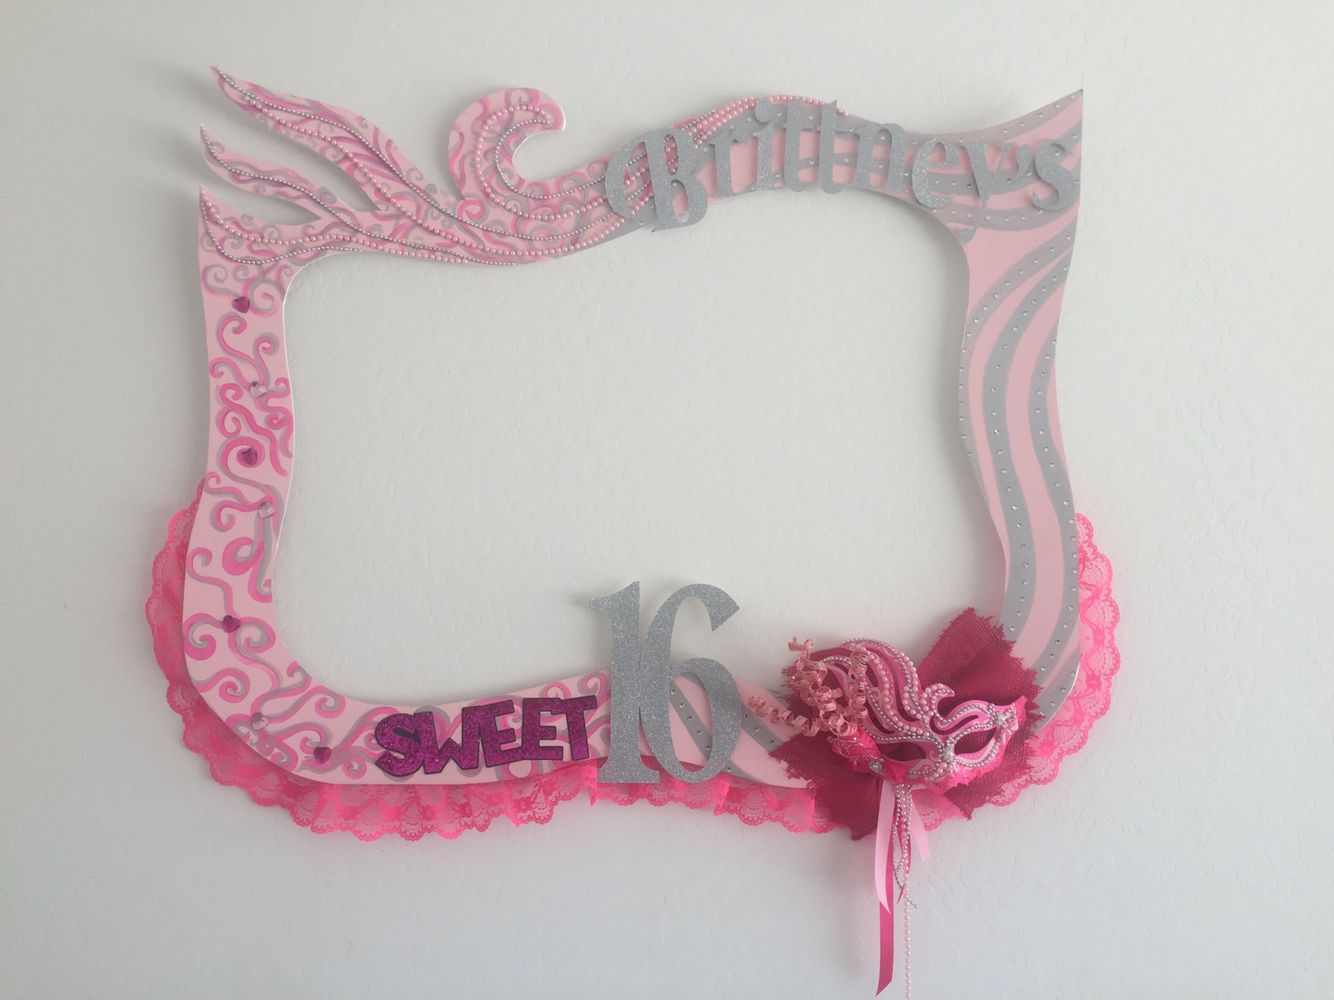 Sweet 16 party frame theme masks colors pink and silver with sweet 16 party frame theme masks colors pink and silver with glitter follow us jeuxipadfo Gallery